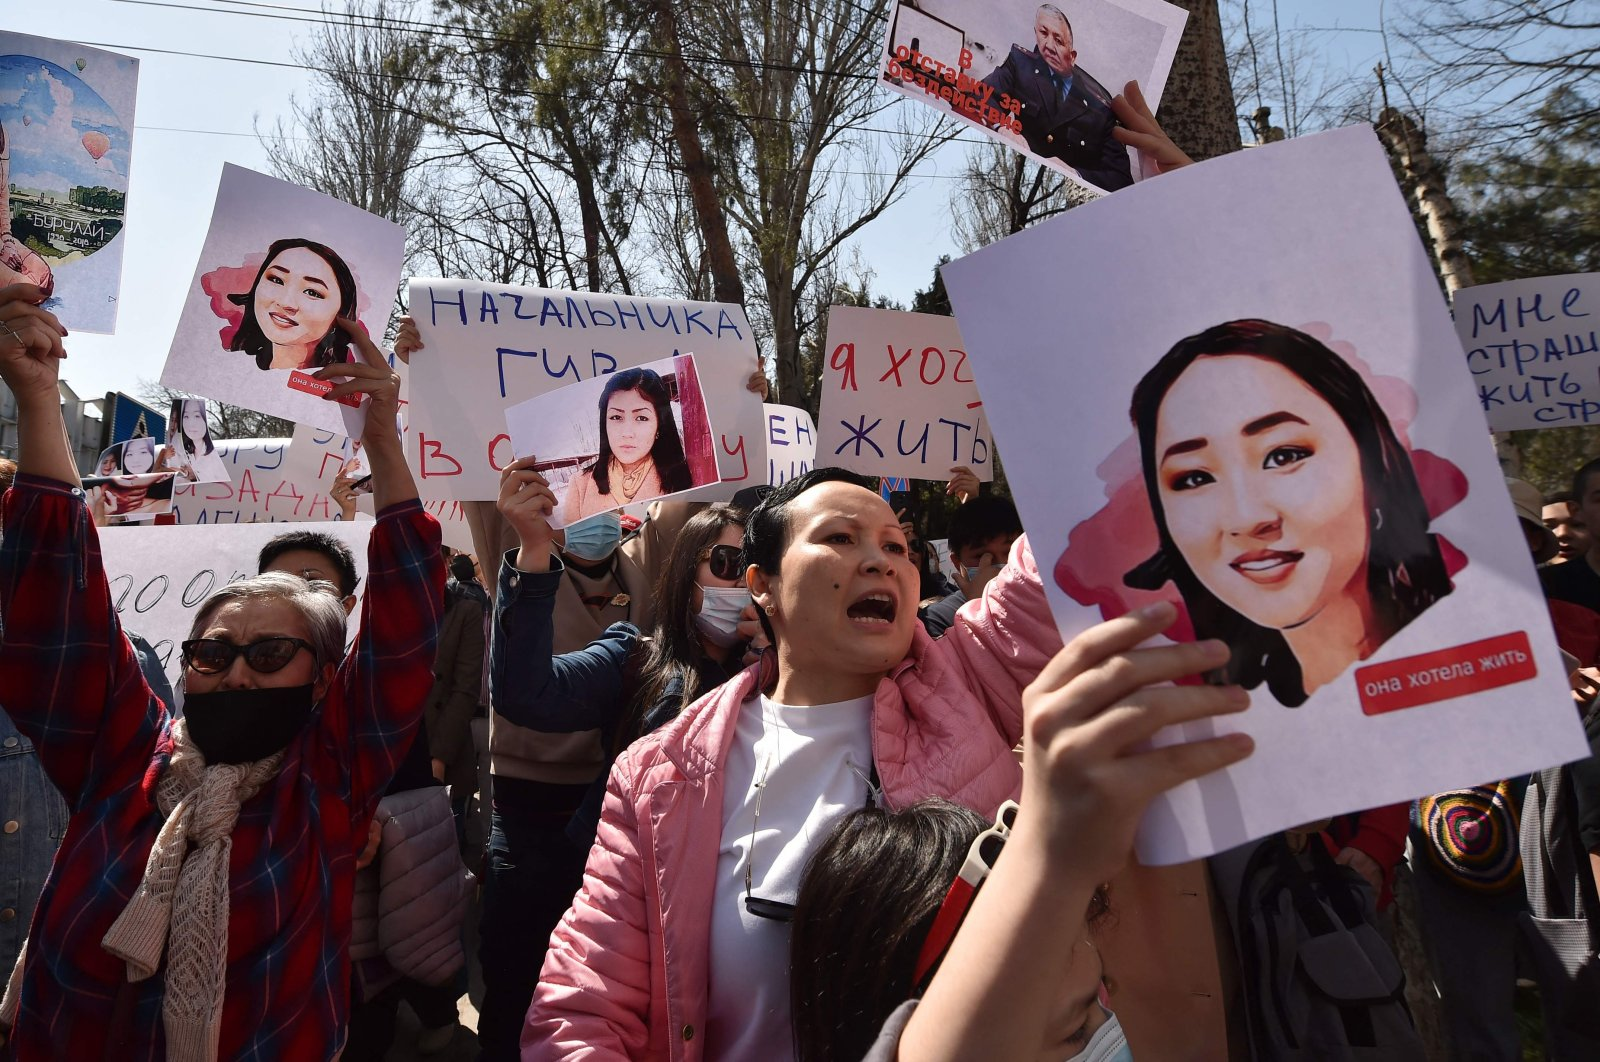 People hold pictures as they attend a rally for the protection of women's rights in Bishkek, Kyrgyzstan, on April 8, 2021. (AFP Photo)